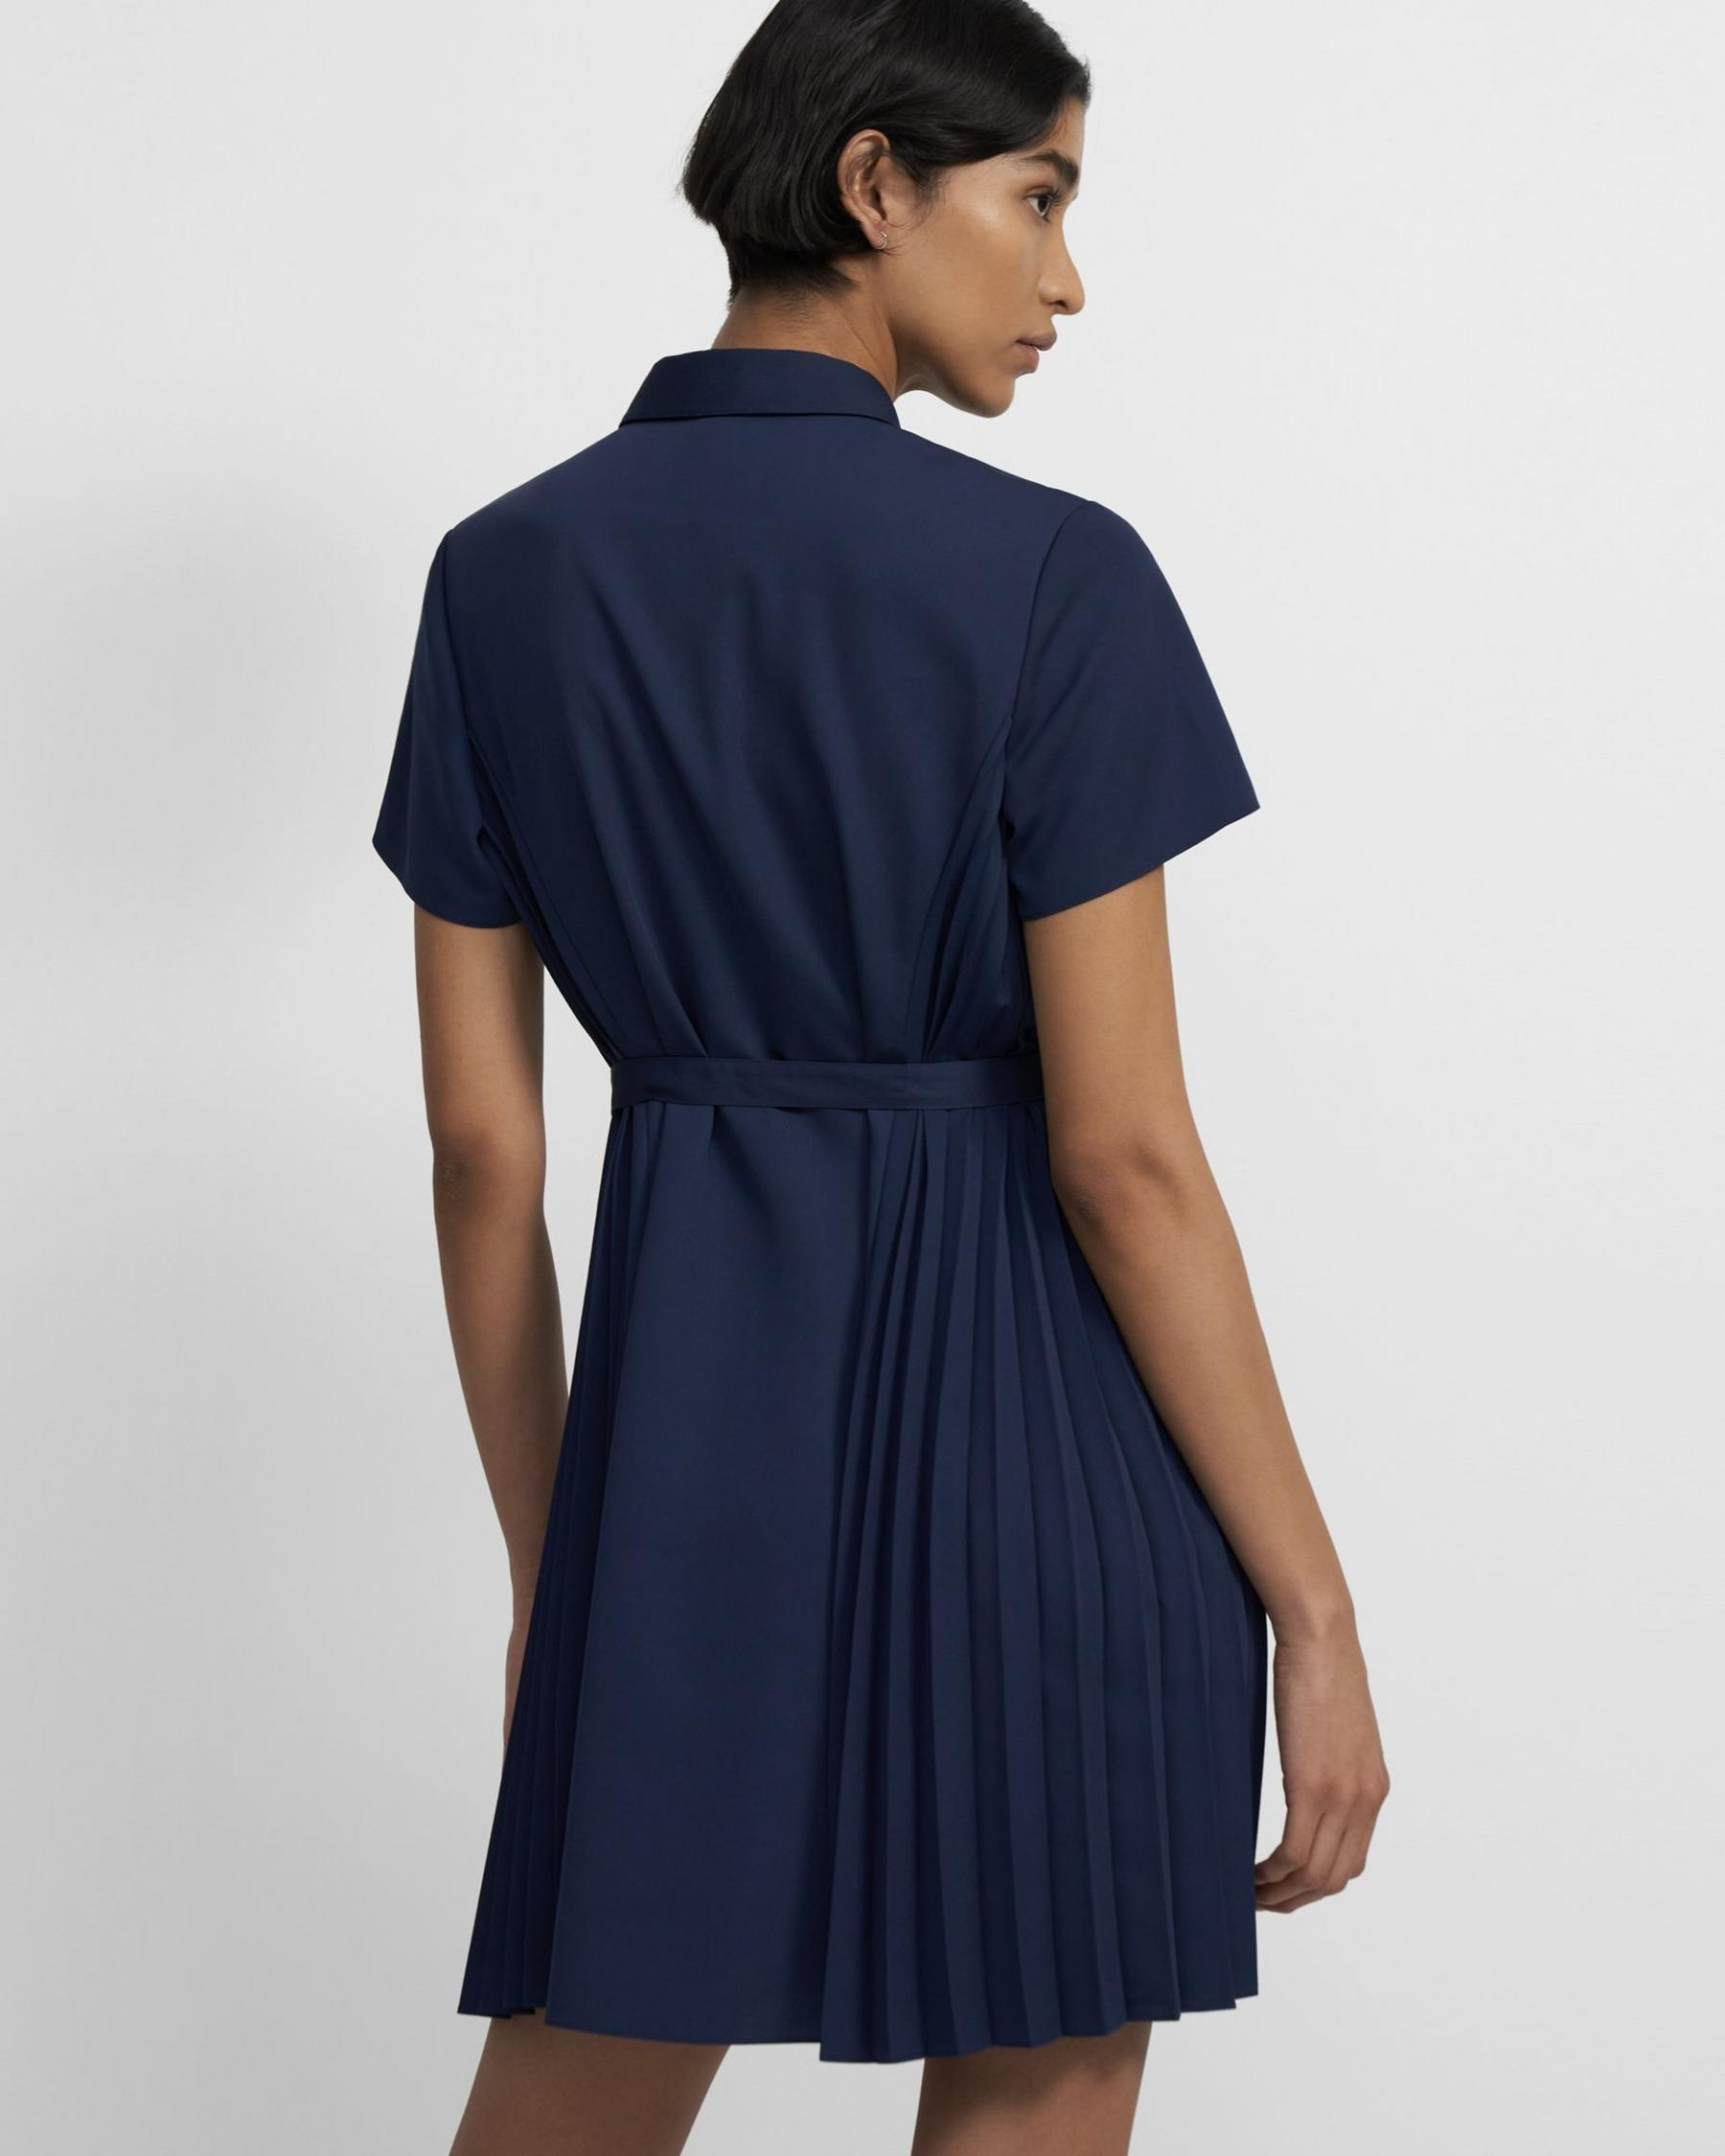 Pleated Short-Sleeve Shirtdress in Satin Crepe 2